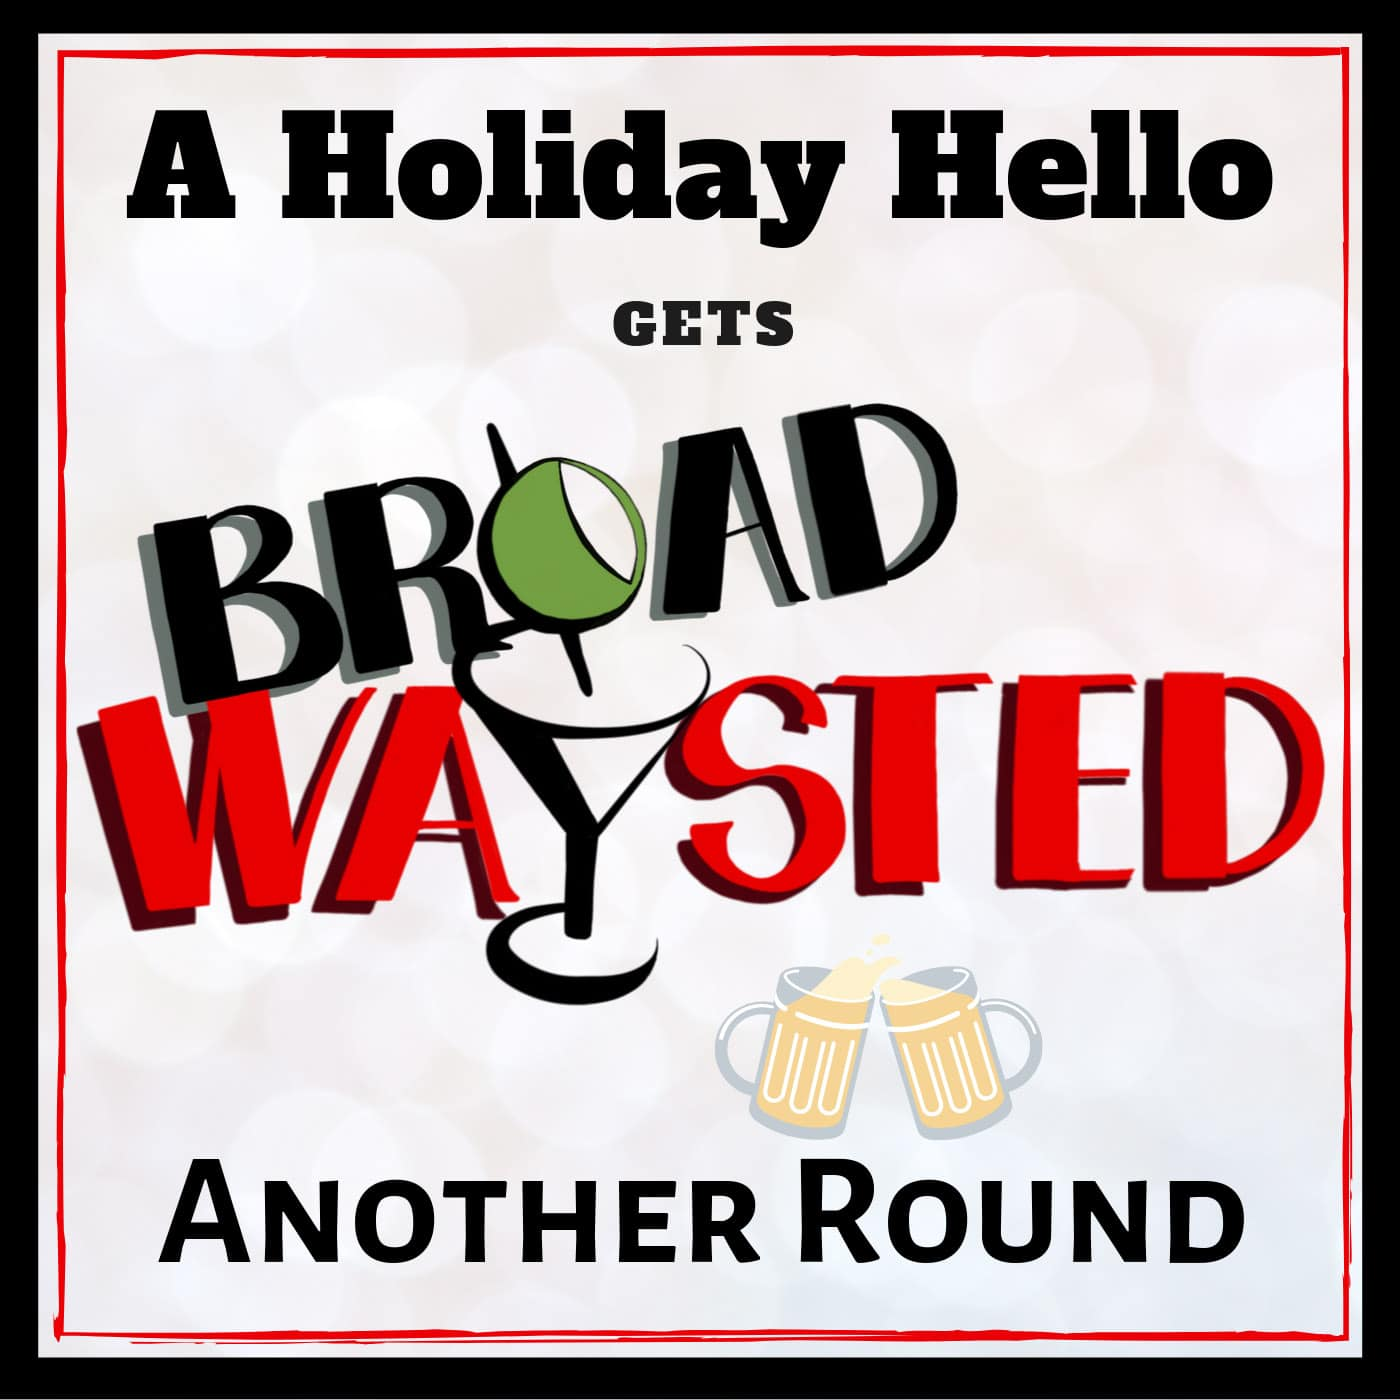 Broadwaysted Another Round Holiday Hello